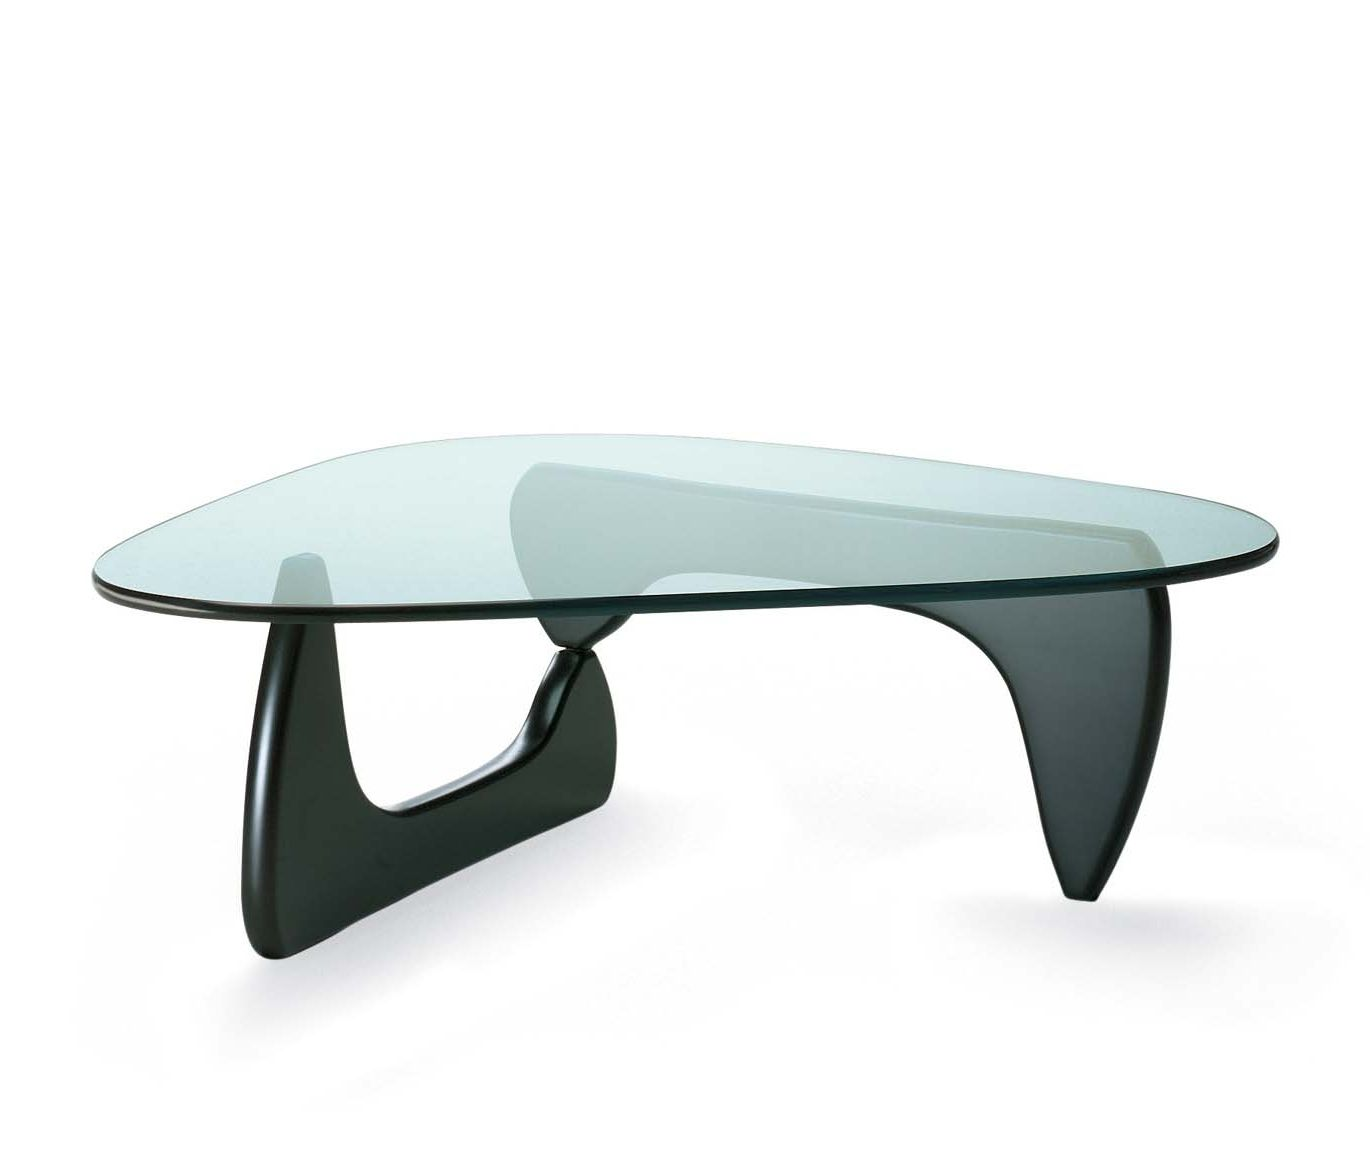 Biomorphic Coffee Table Coffee Table Contemporary Wooden Glass Vitra